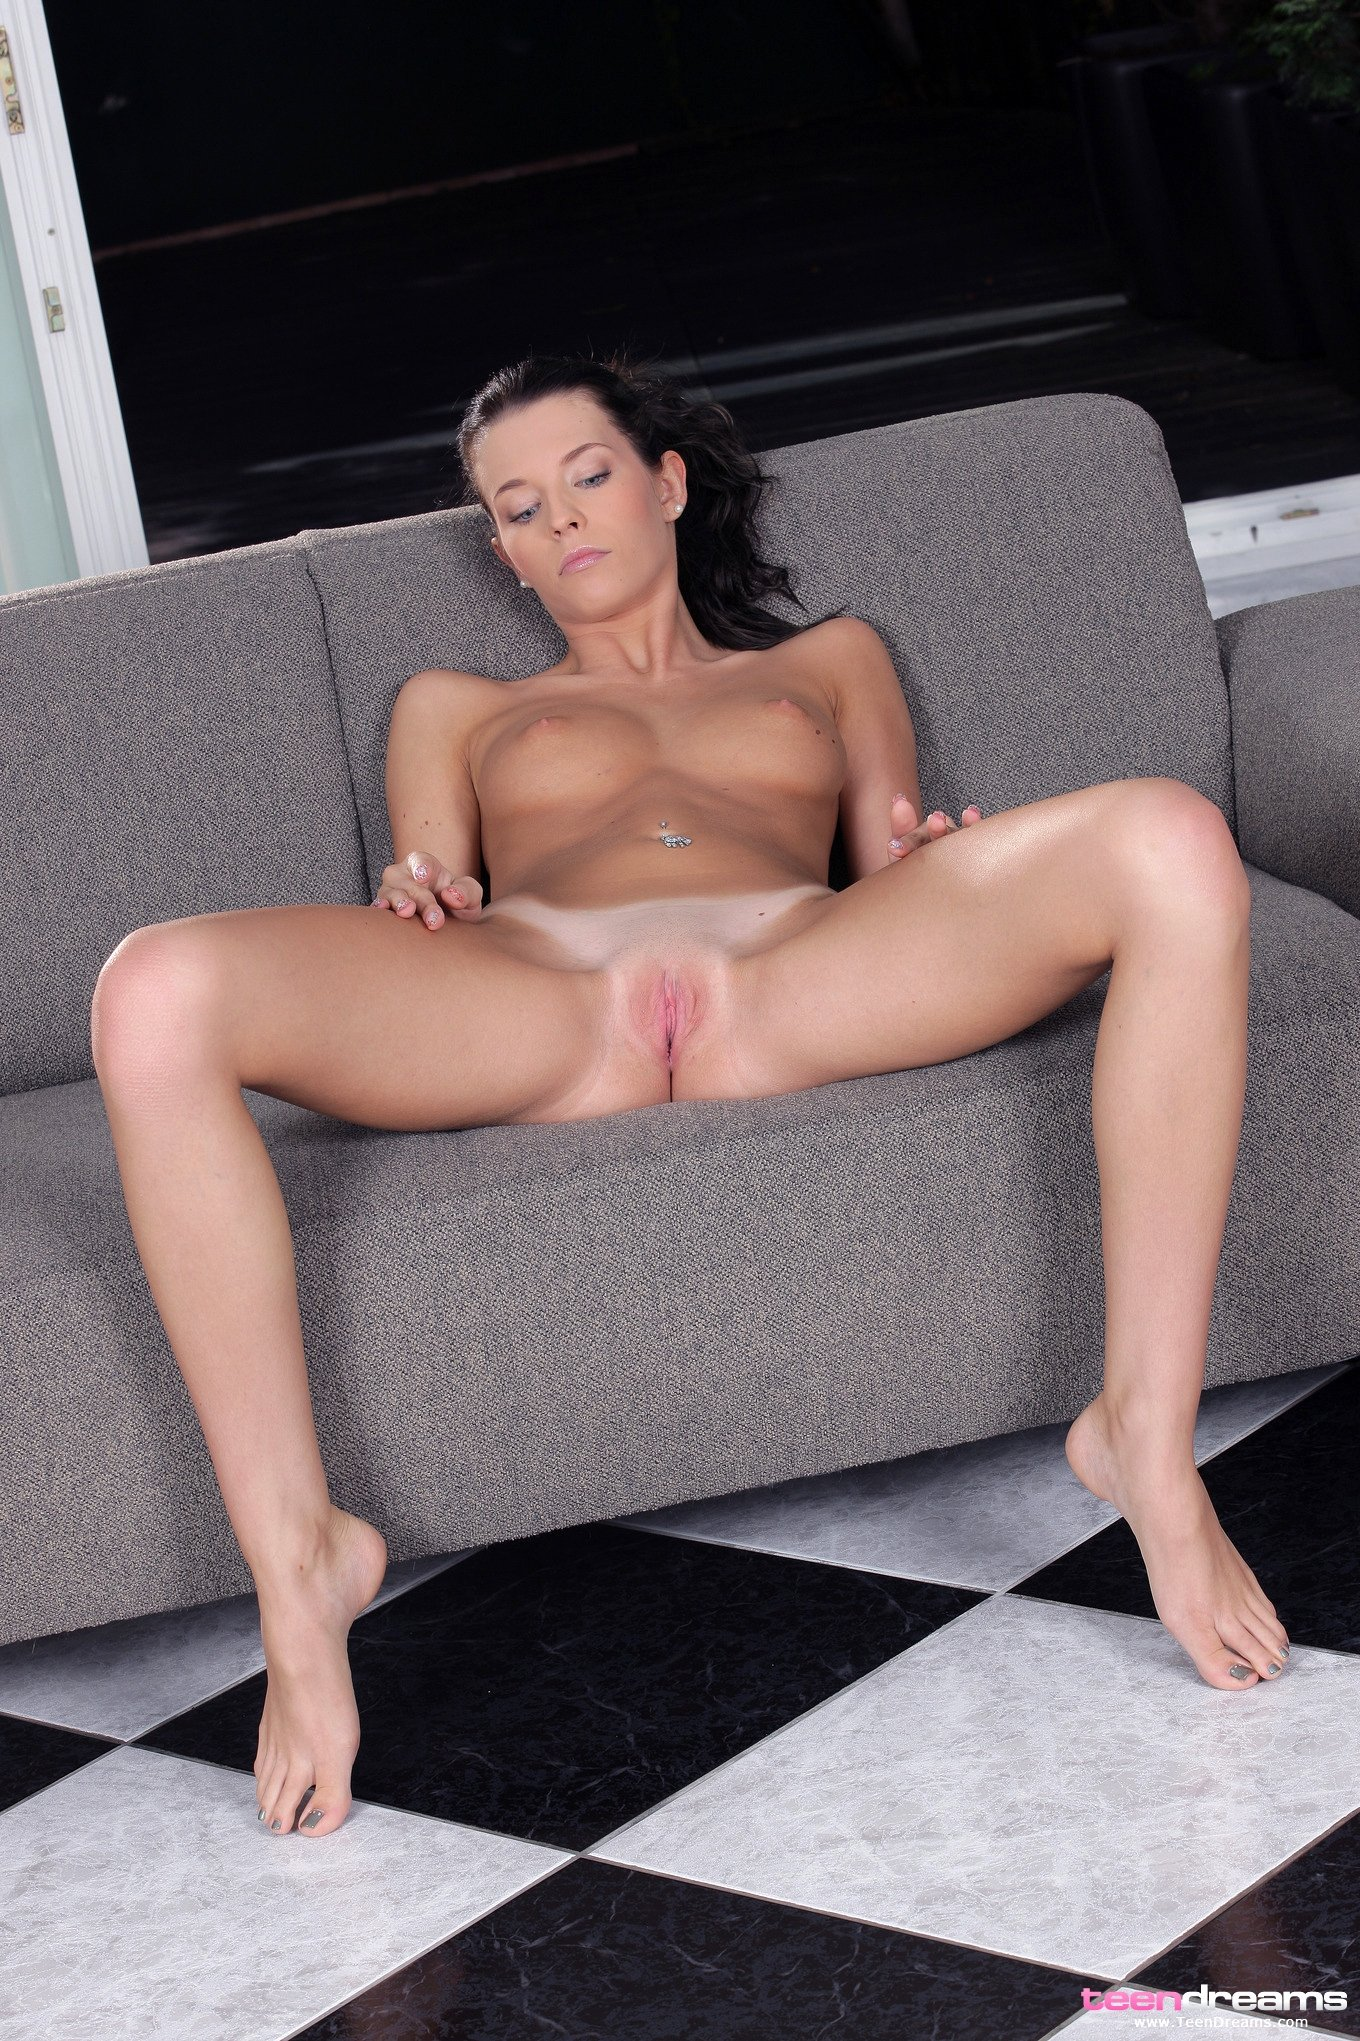 Kari sweets nude home video